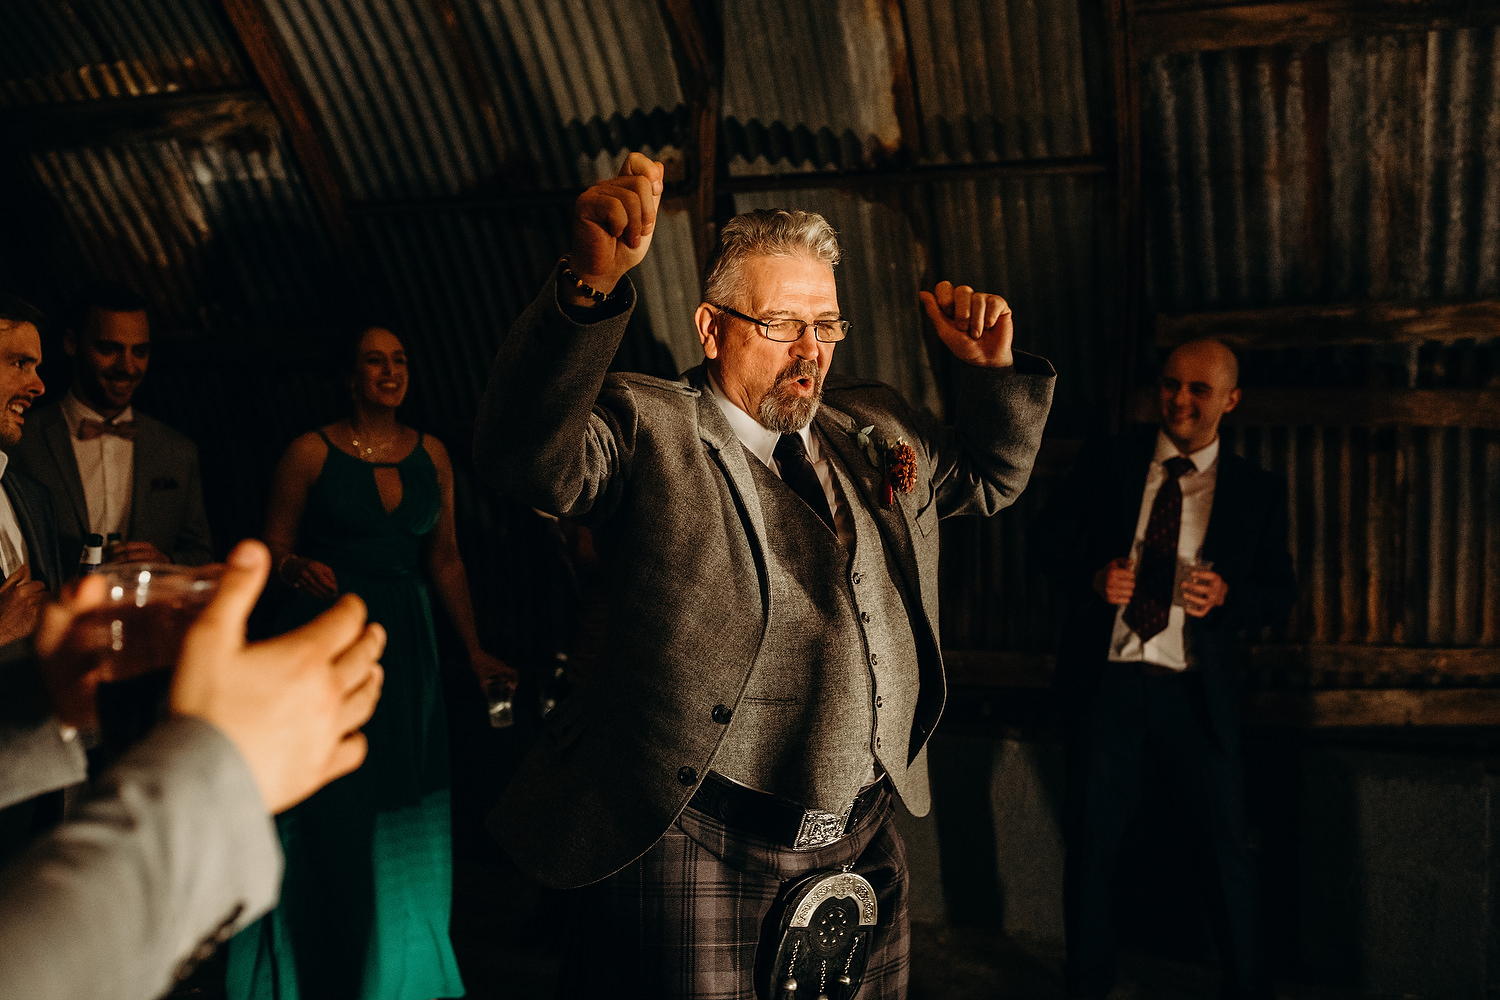 father of bride dancing